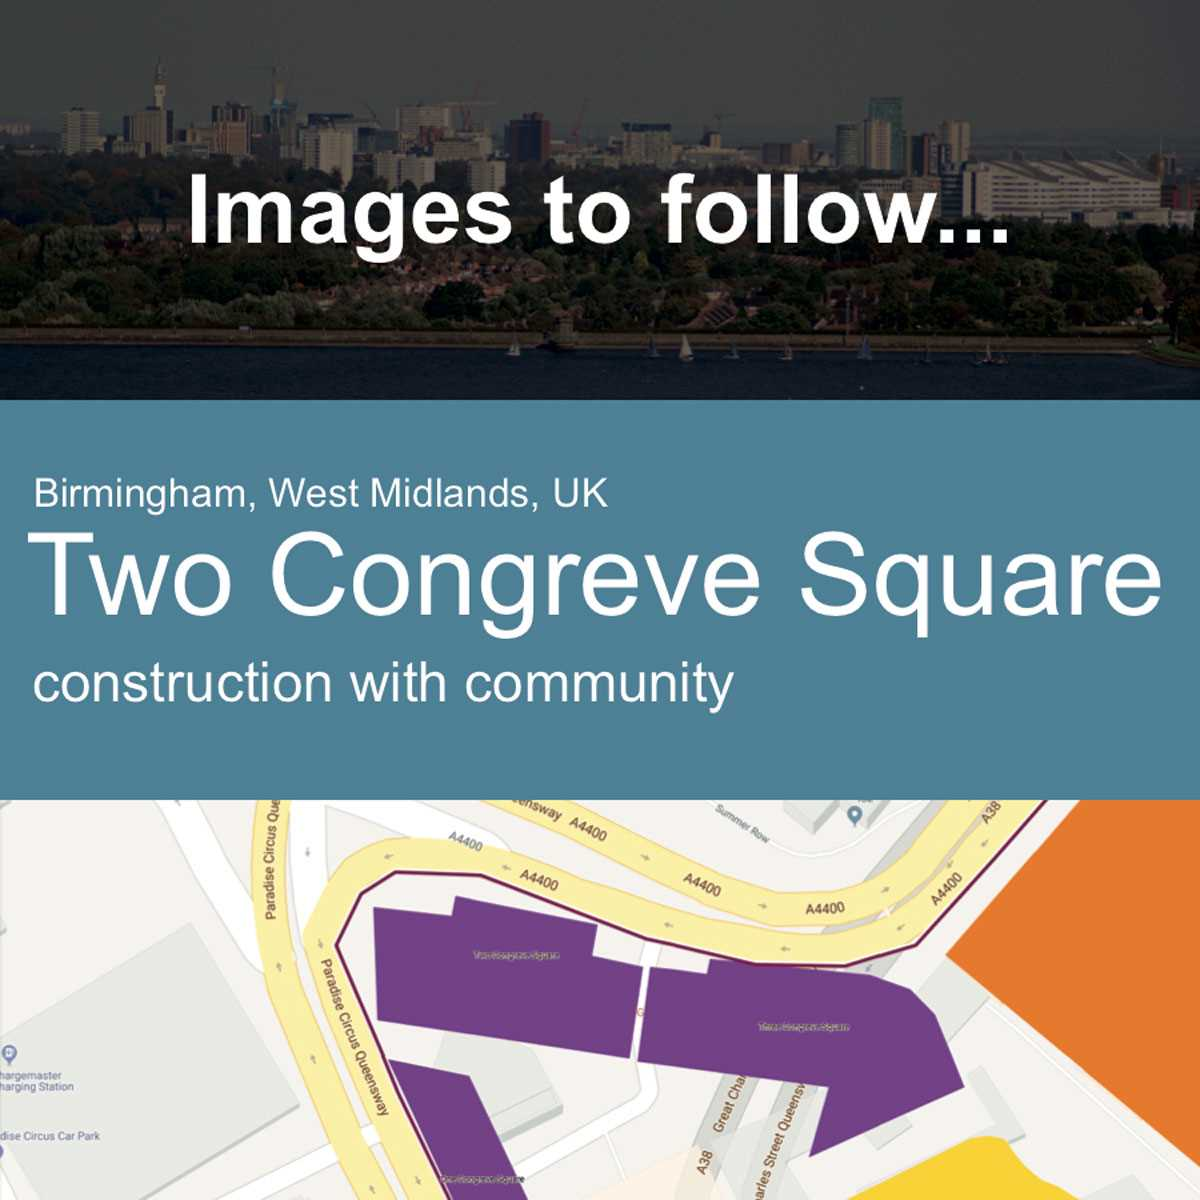 Two+Congreve+Square%2c+Birmingham.+UK+-+Construction+with+Community